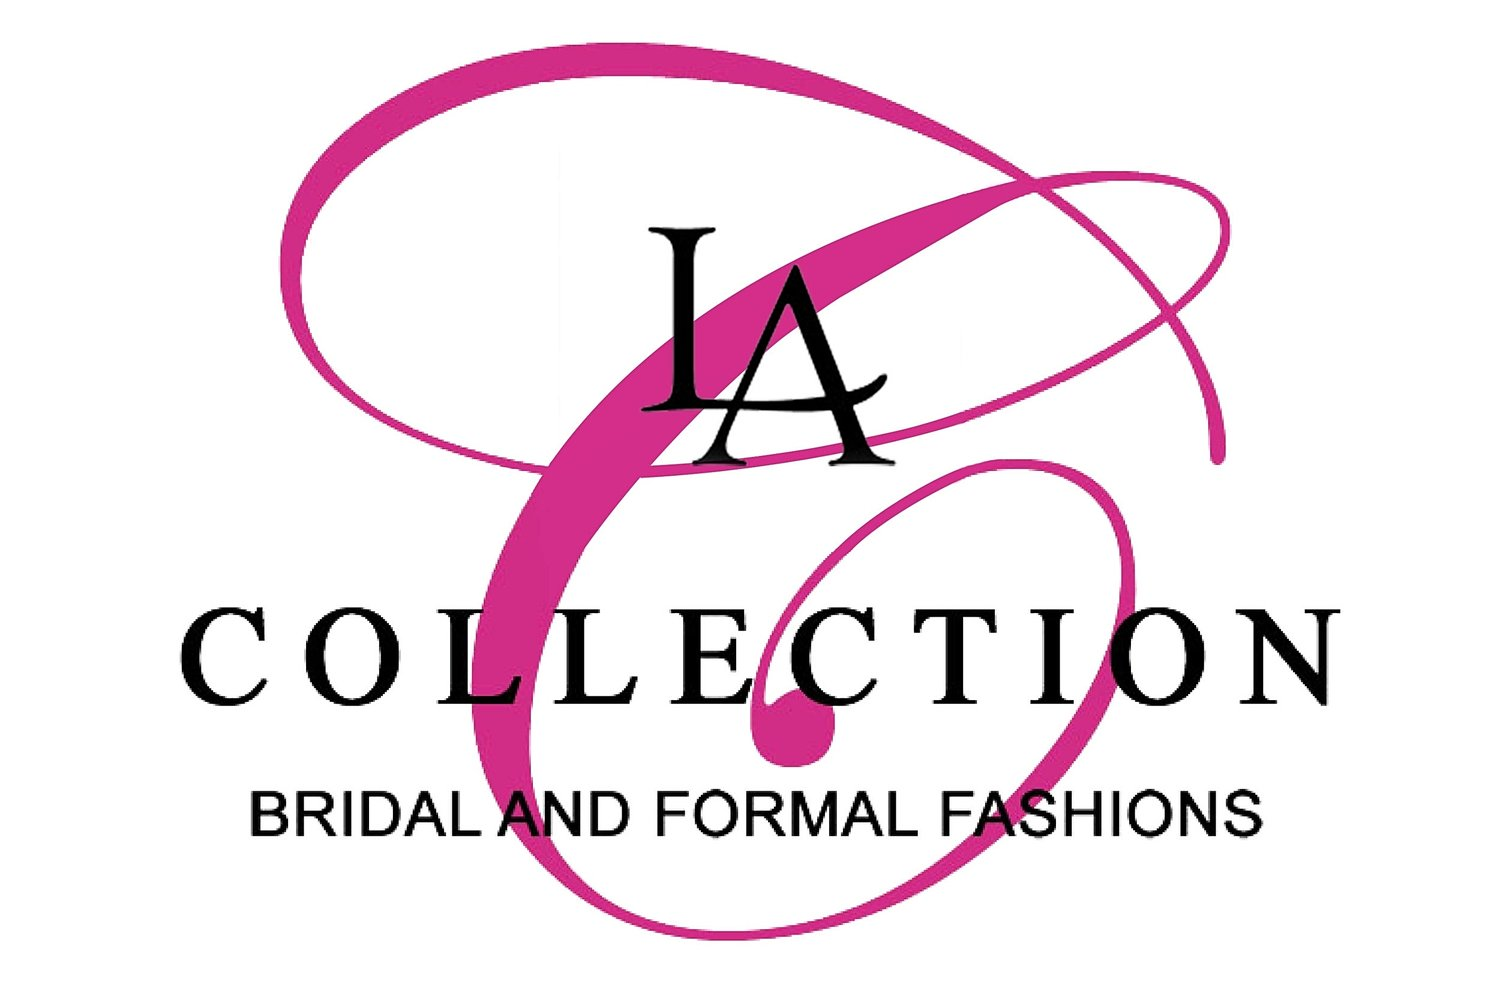 LA Collection Bridal